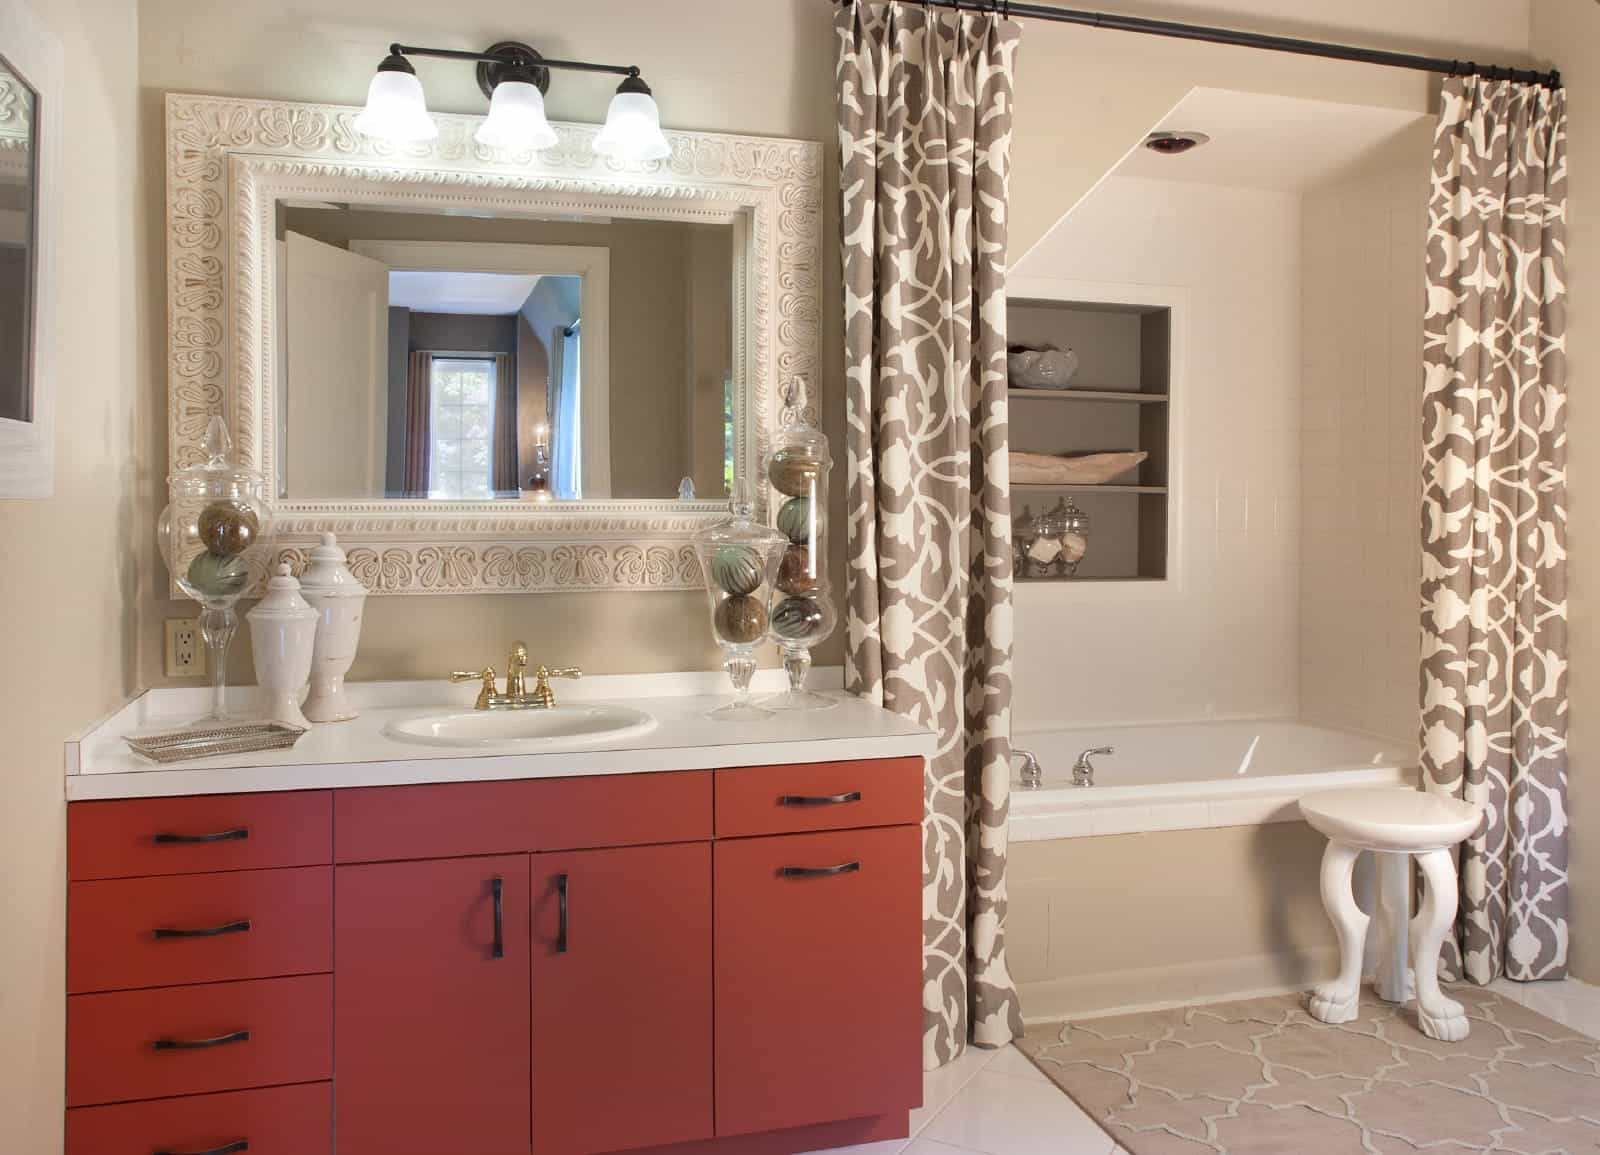 Red Vanity And Double Shower Curtains In Feminine Bathroom (View 7 of 14)